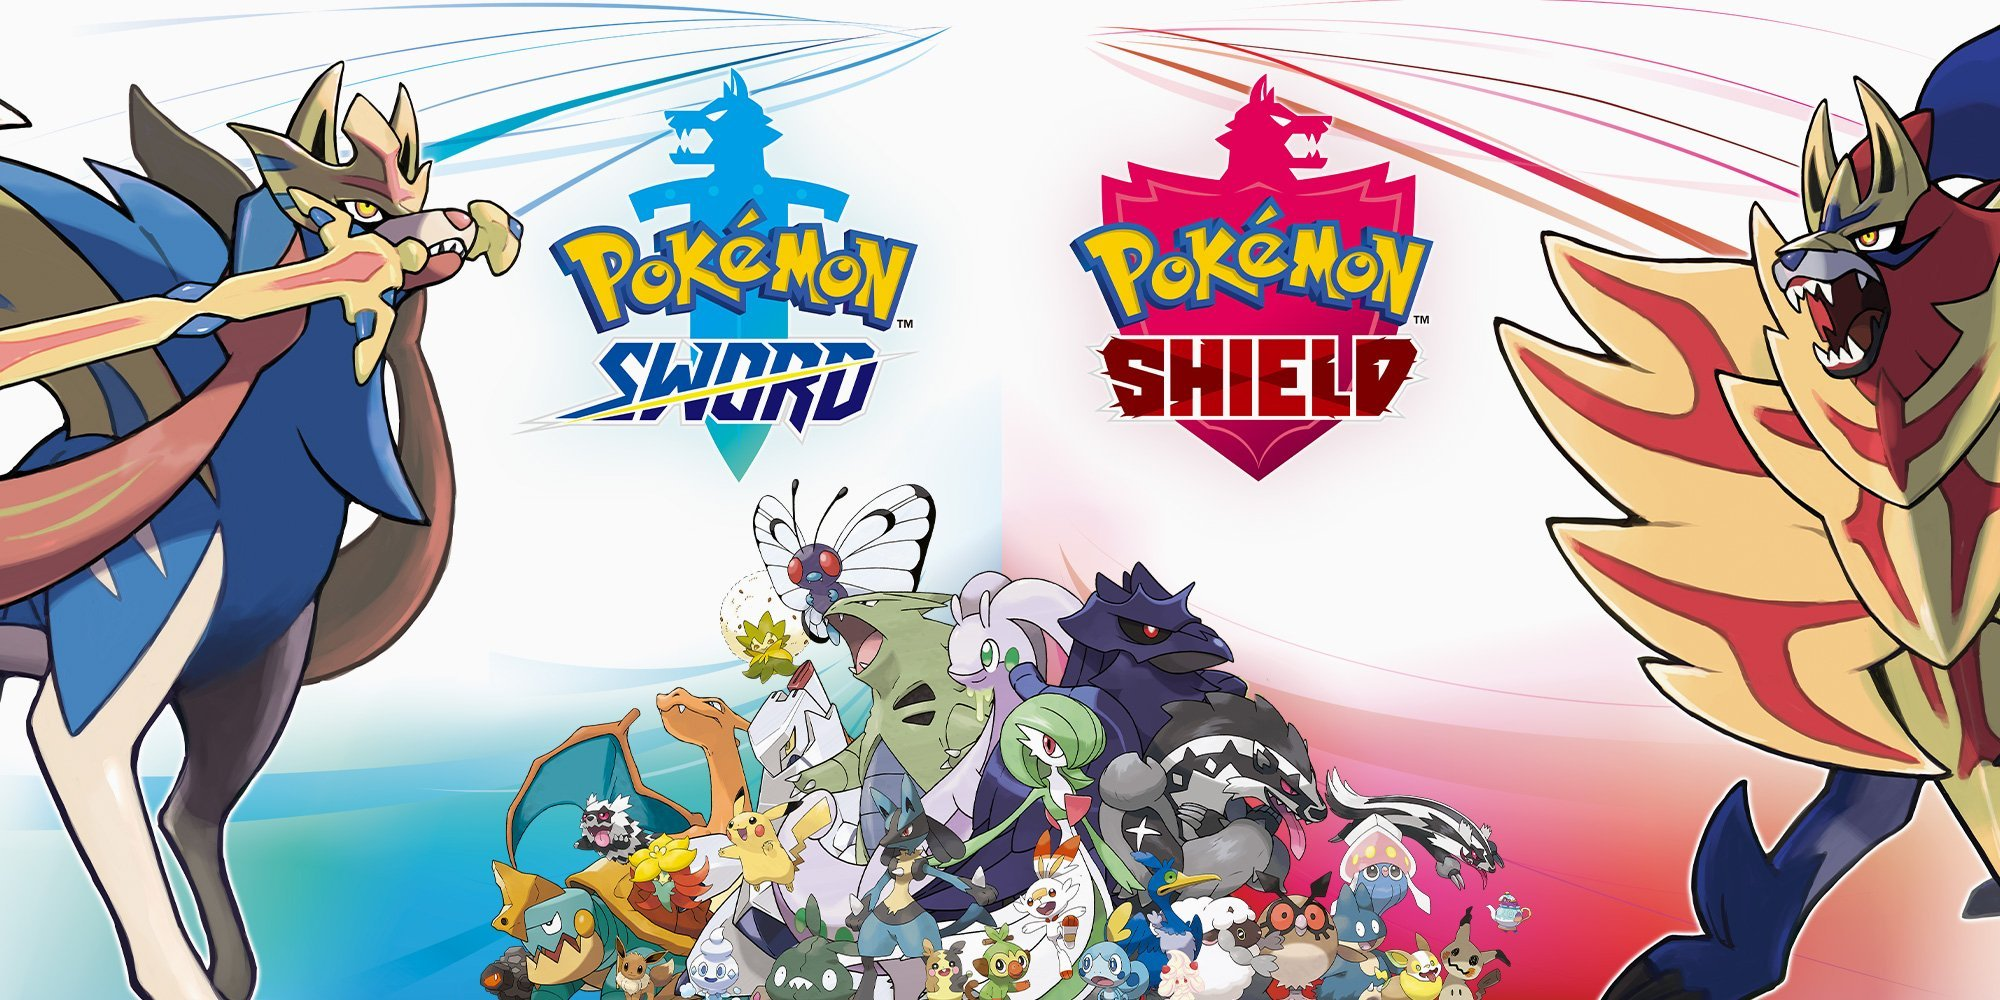 Pokemon Sword en Shield – Versie 1.1.0 Patch Notes